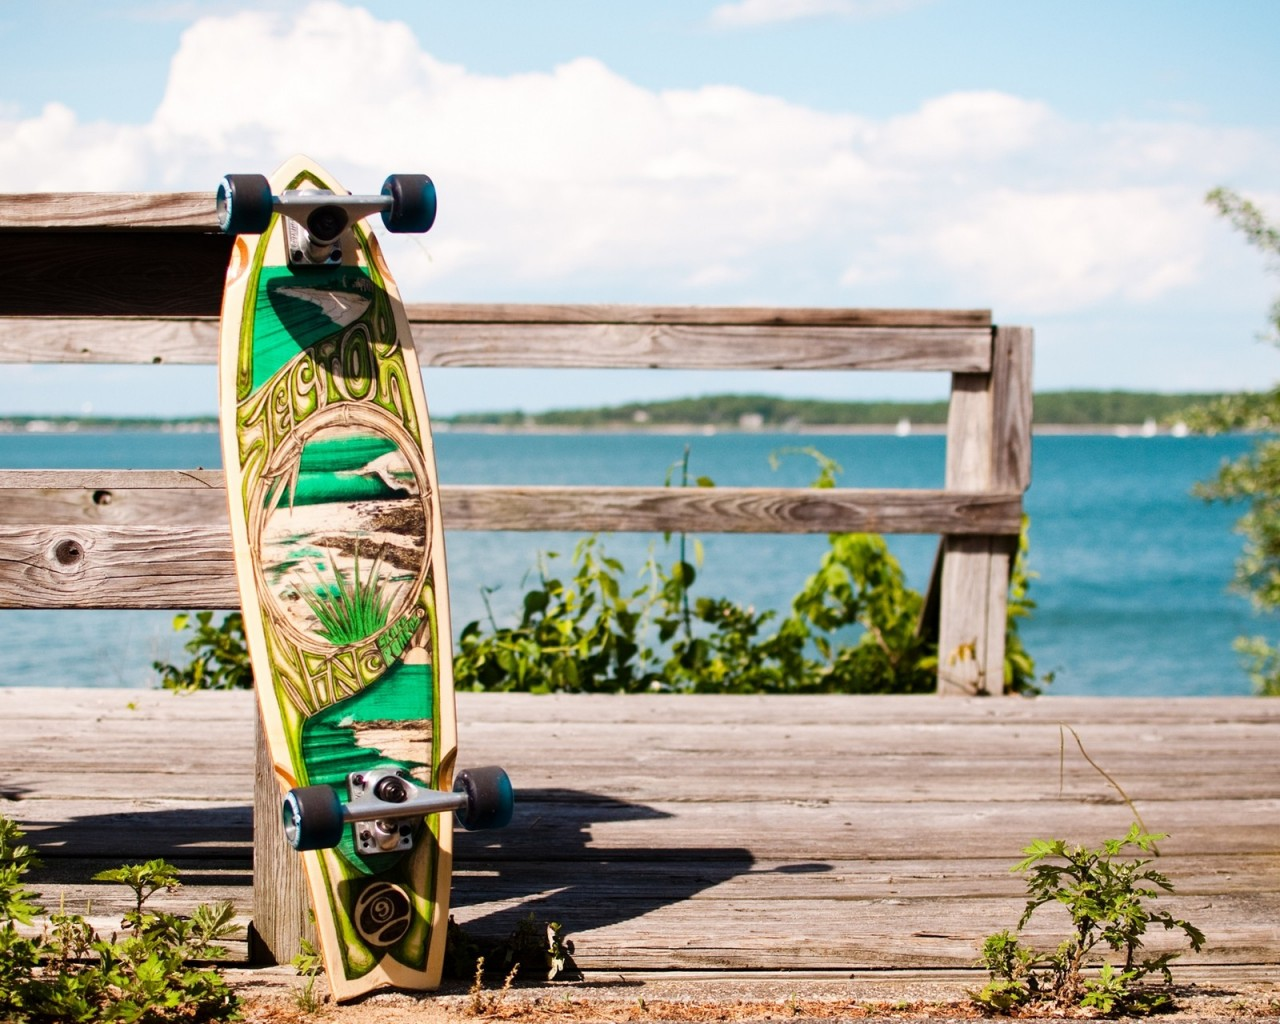 Hd Wallpapers Girls Longboard Road Skate Inspiring Picture Favim Hd 1280x1024